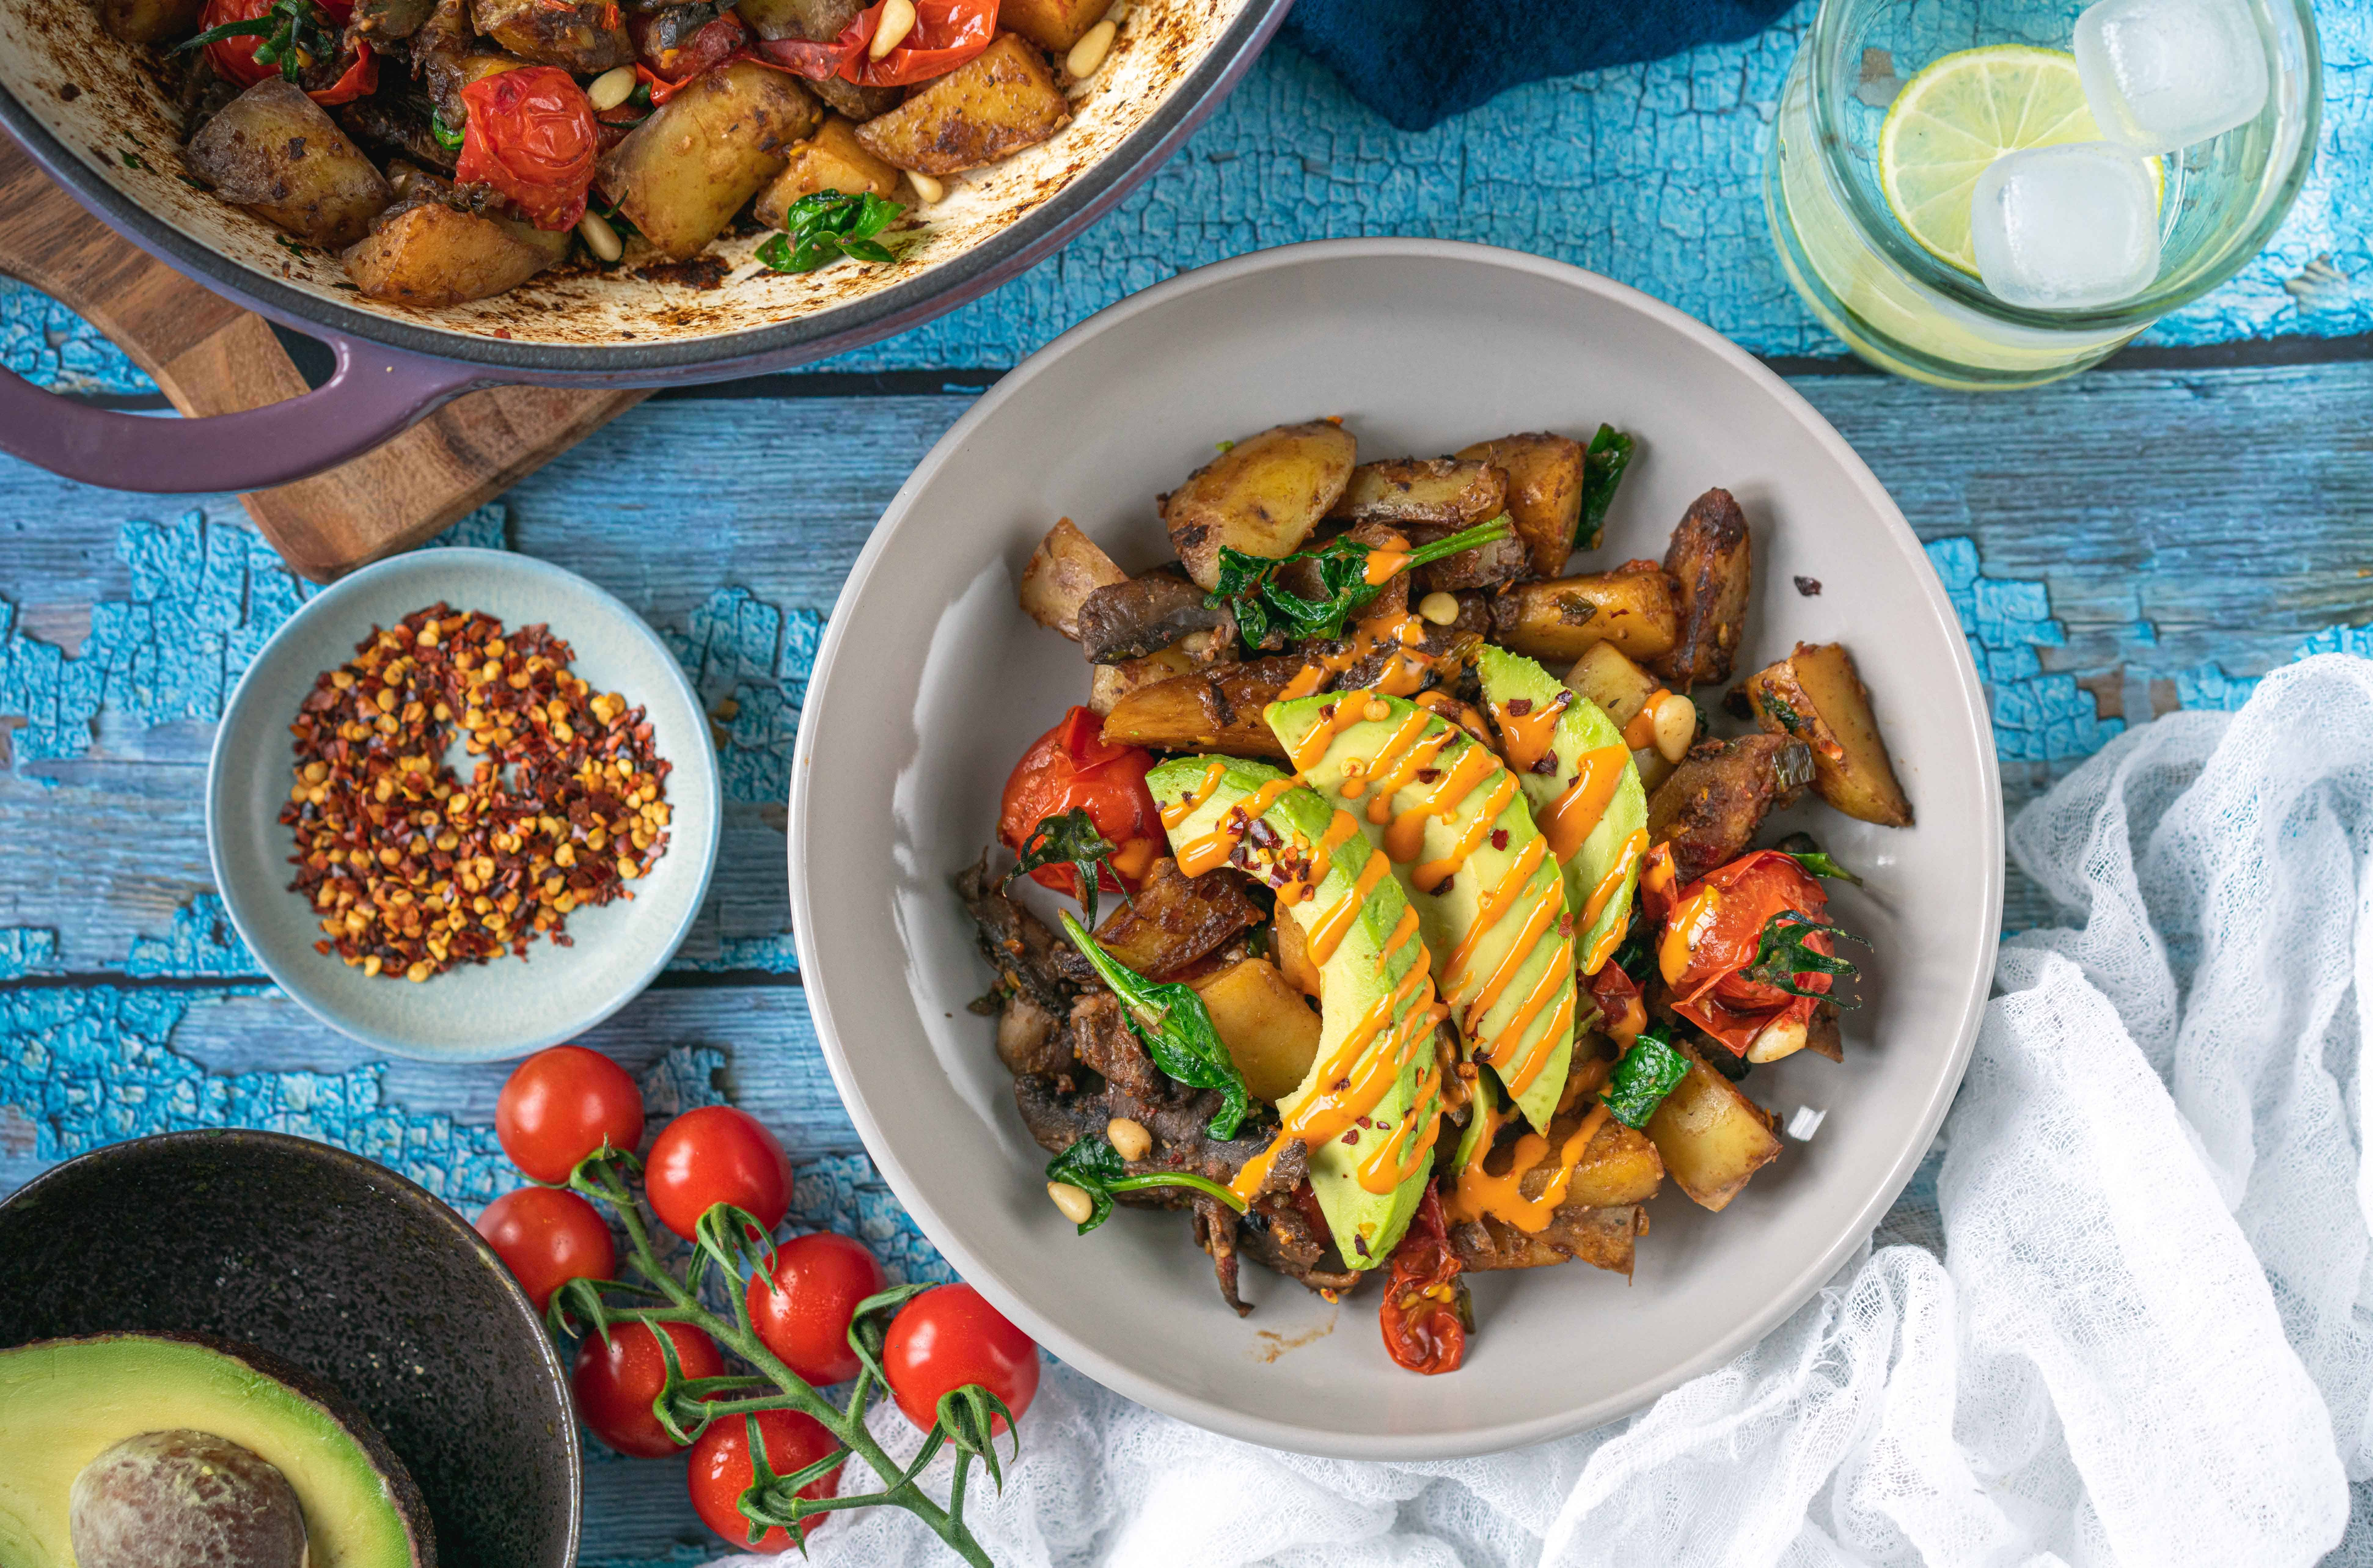 This easy and delicious healthy one pan breakfast recipe is the perfect dish for breakfast, brunch, or light lunch/dinner #healthybreakfast #easybreakfast #onesheetmeal #veganbreakfast #cleaneating